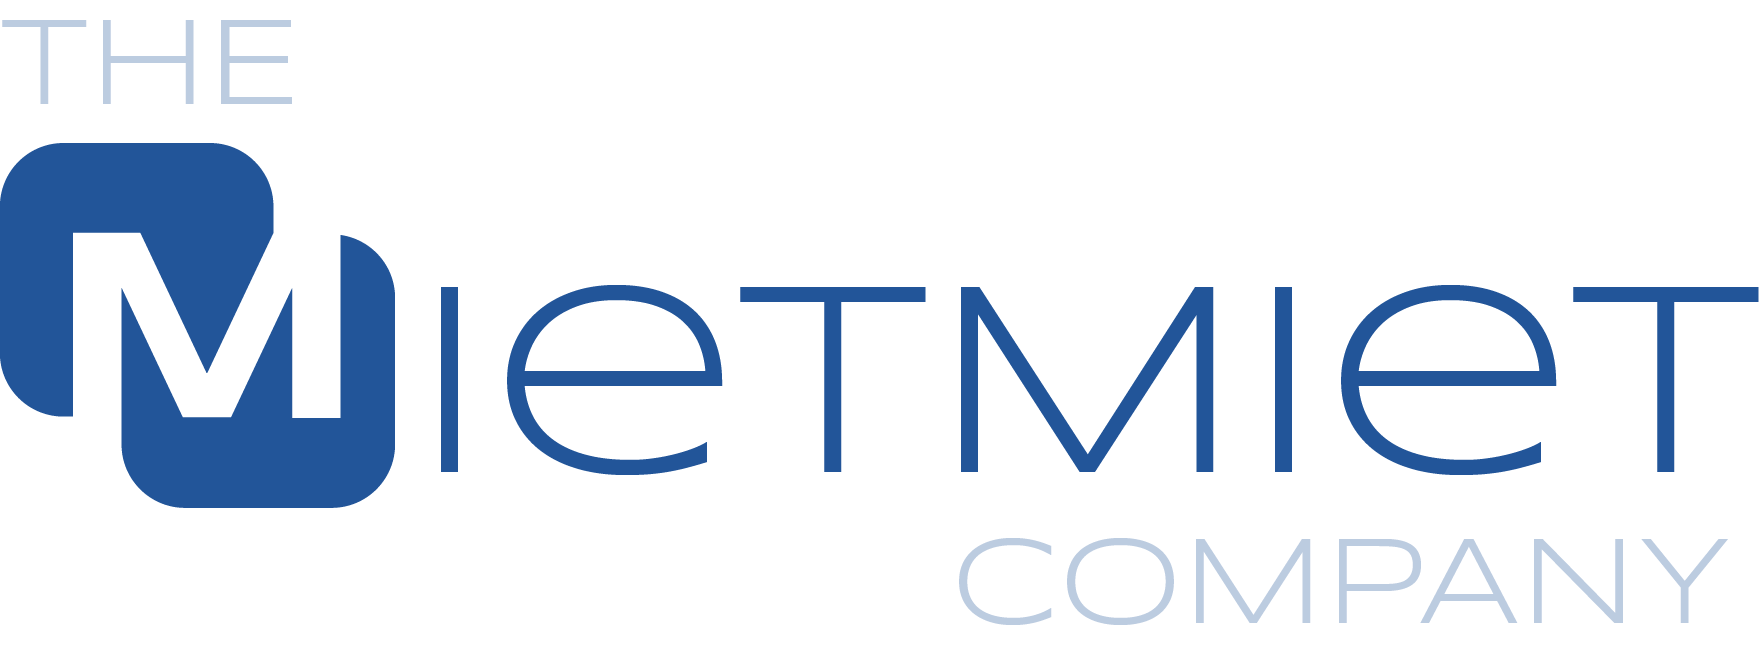 The MietMiet Company